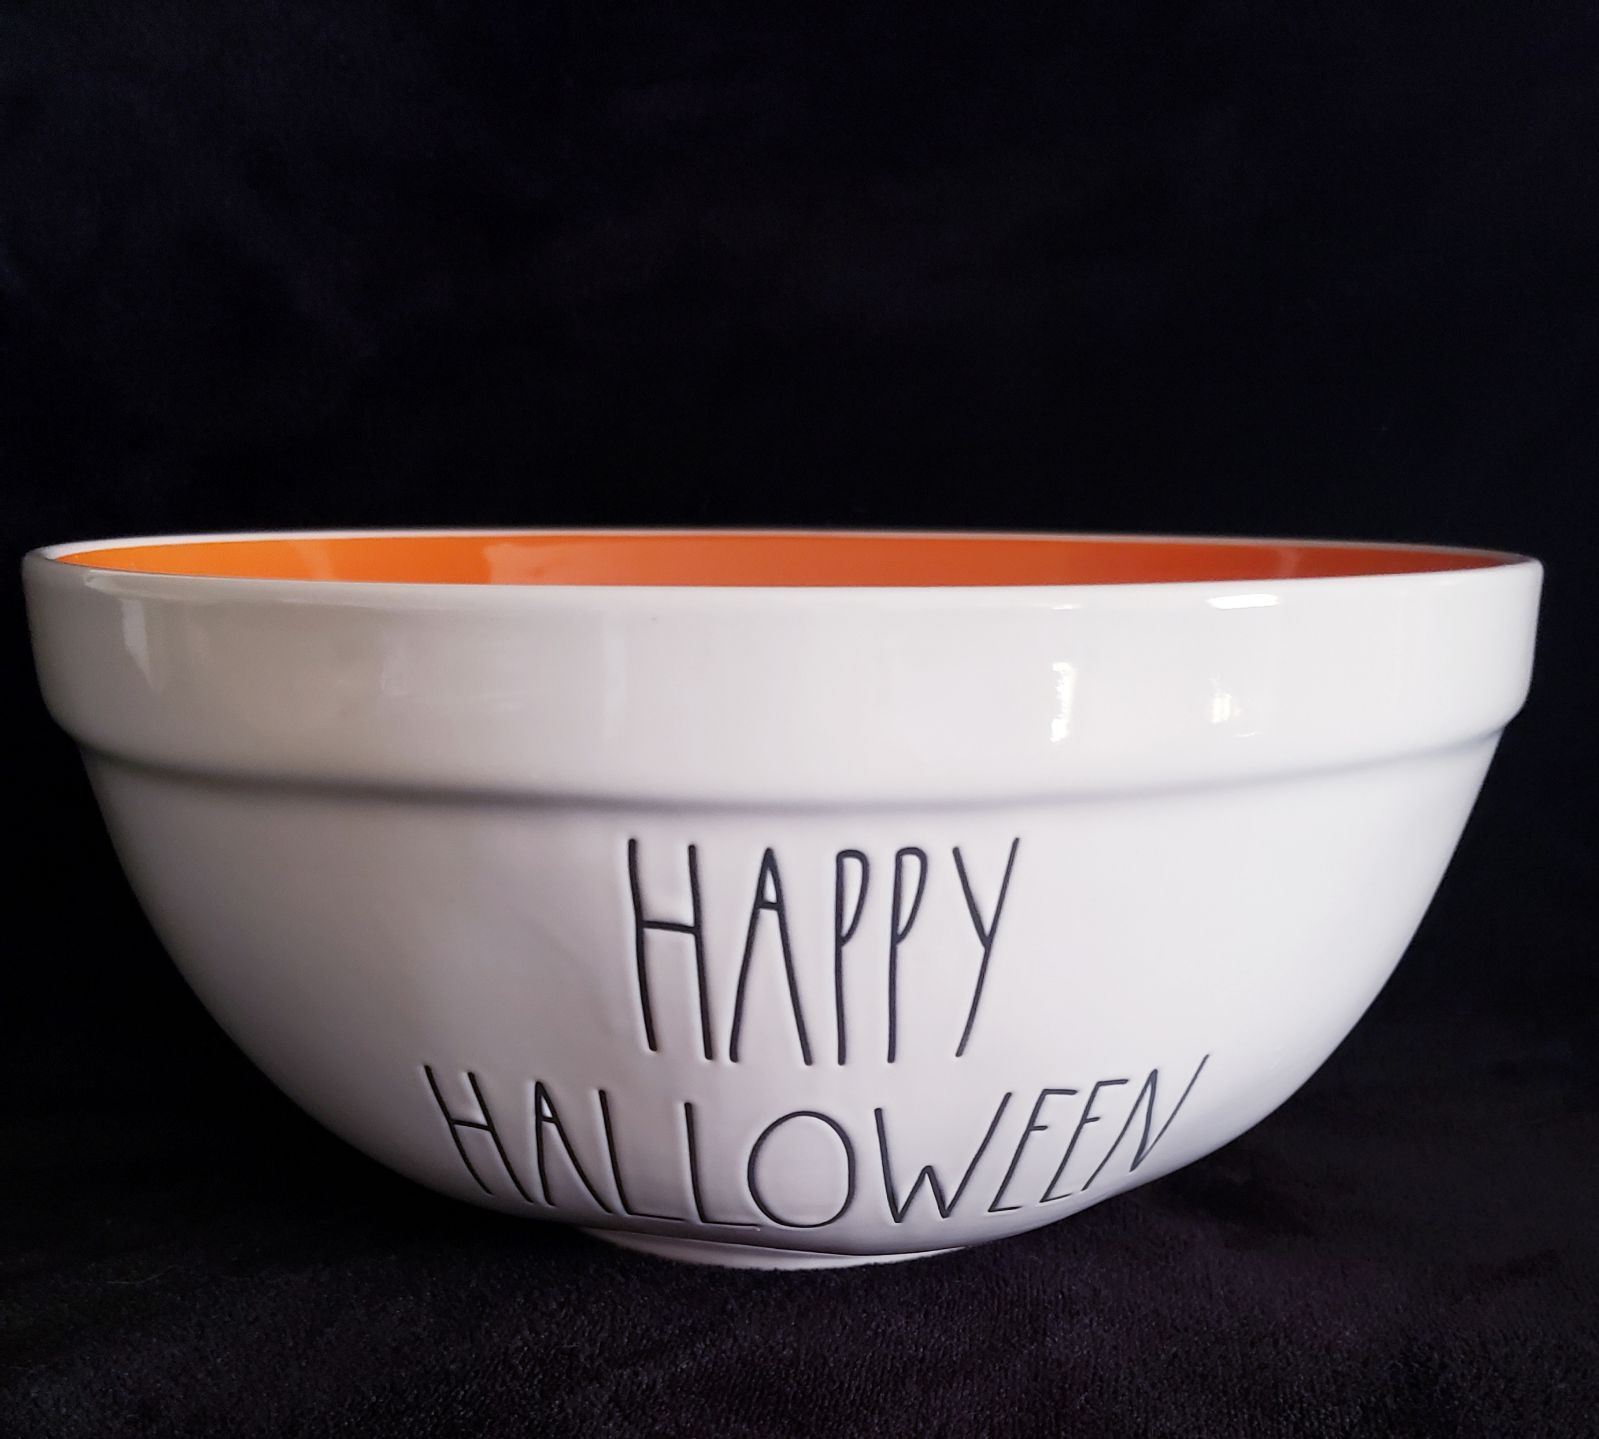 1 Rae Dunn Happy Halloween Candy Bowl This Is Ceramic Not